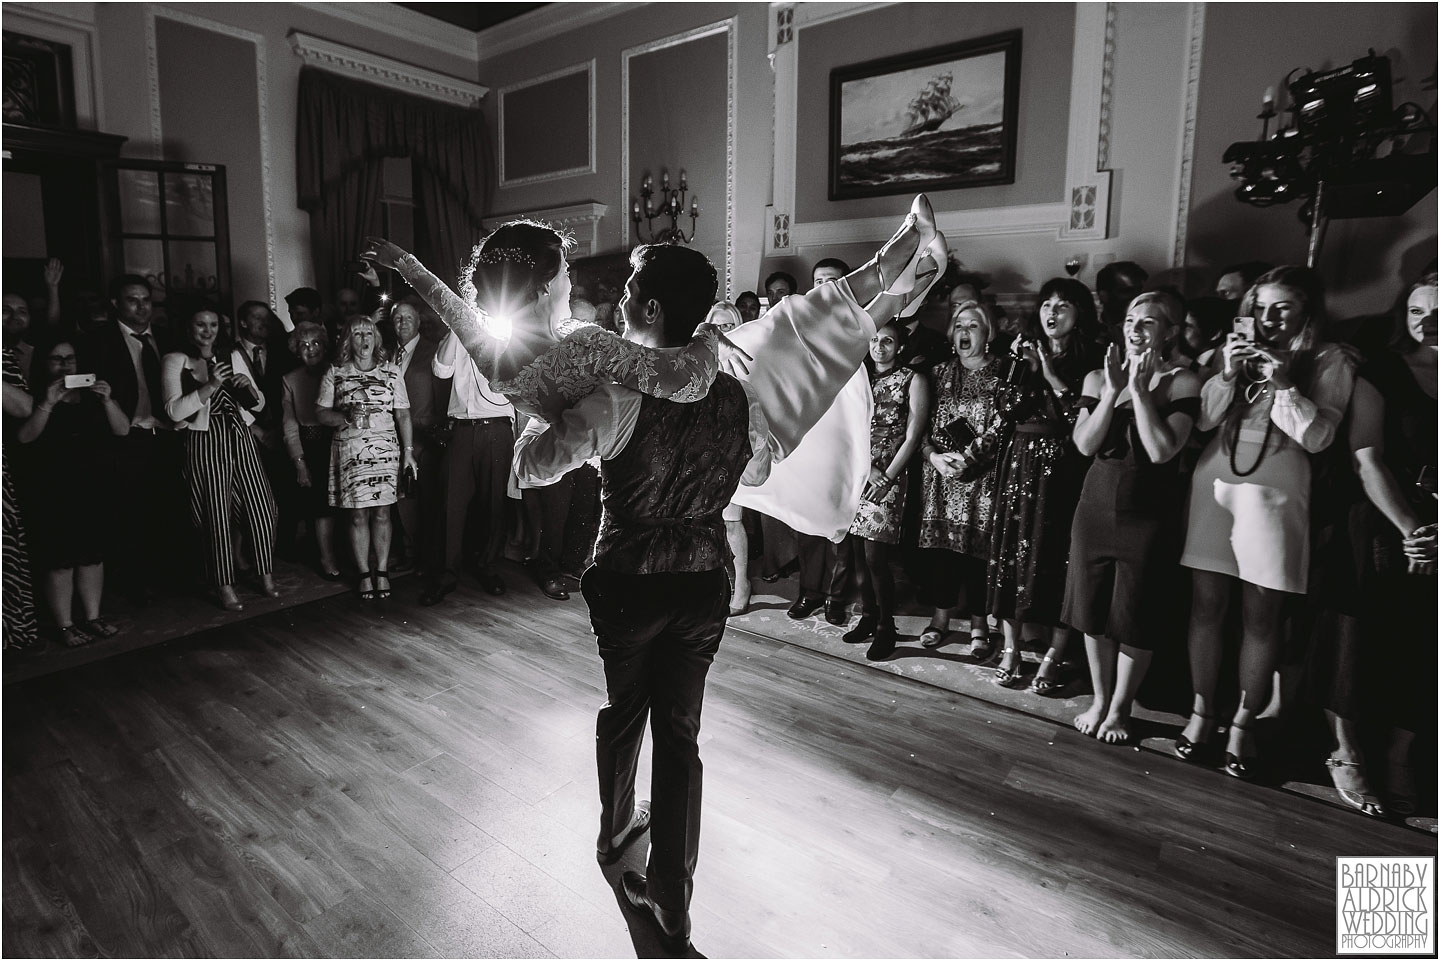 First Dance at Denton Hall near Ilkley in Wharfdale, Amazing Yorkshire Wedding Photos, Best Yorkshire Wedding Photos 2018